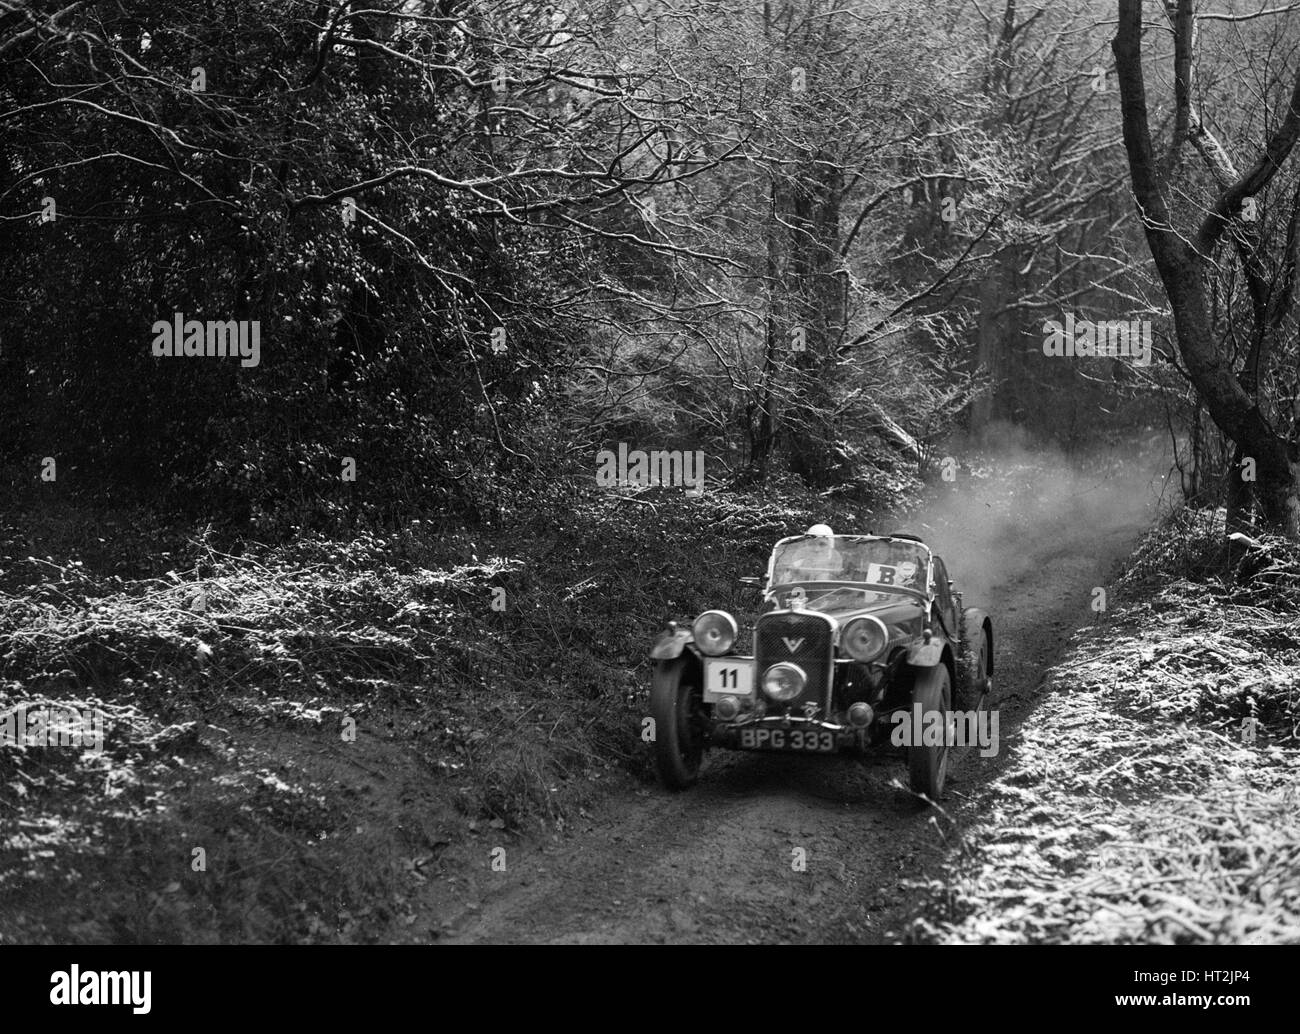 1934 Singer Le Mans taking part in a motoring trial, late 1930s. Artist: Bill Brunell. - Stock Image